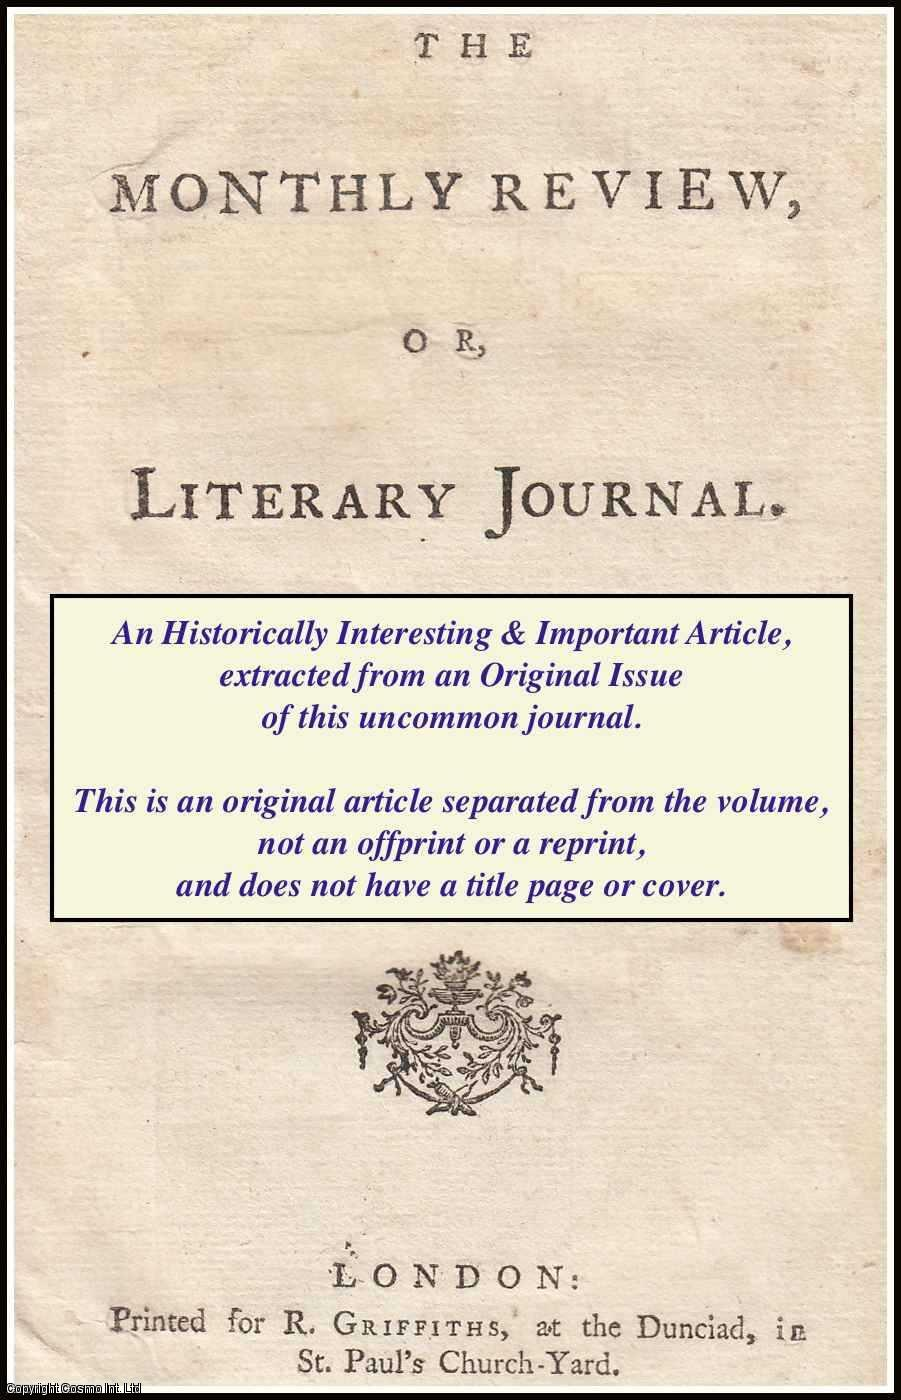 --- - Journal of a Residence in The Burmhan Empire and more Particularly at The Court of Amarapoorah. By Captain Hiram Cox. Published 1821. An original article from the Monthly Review 1822.